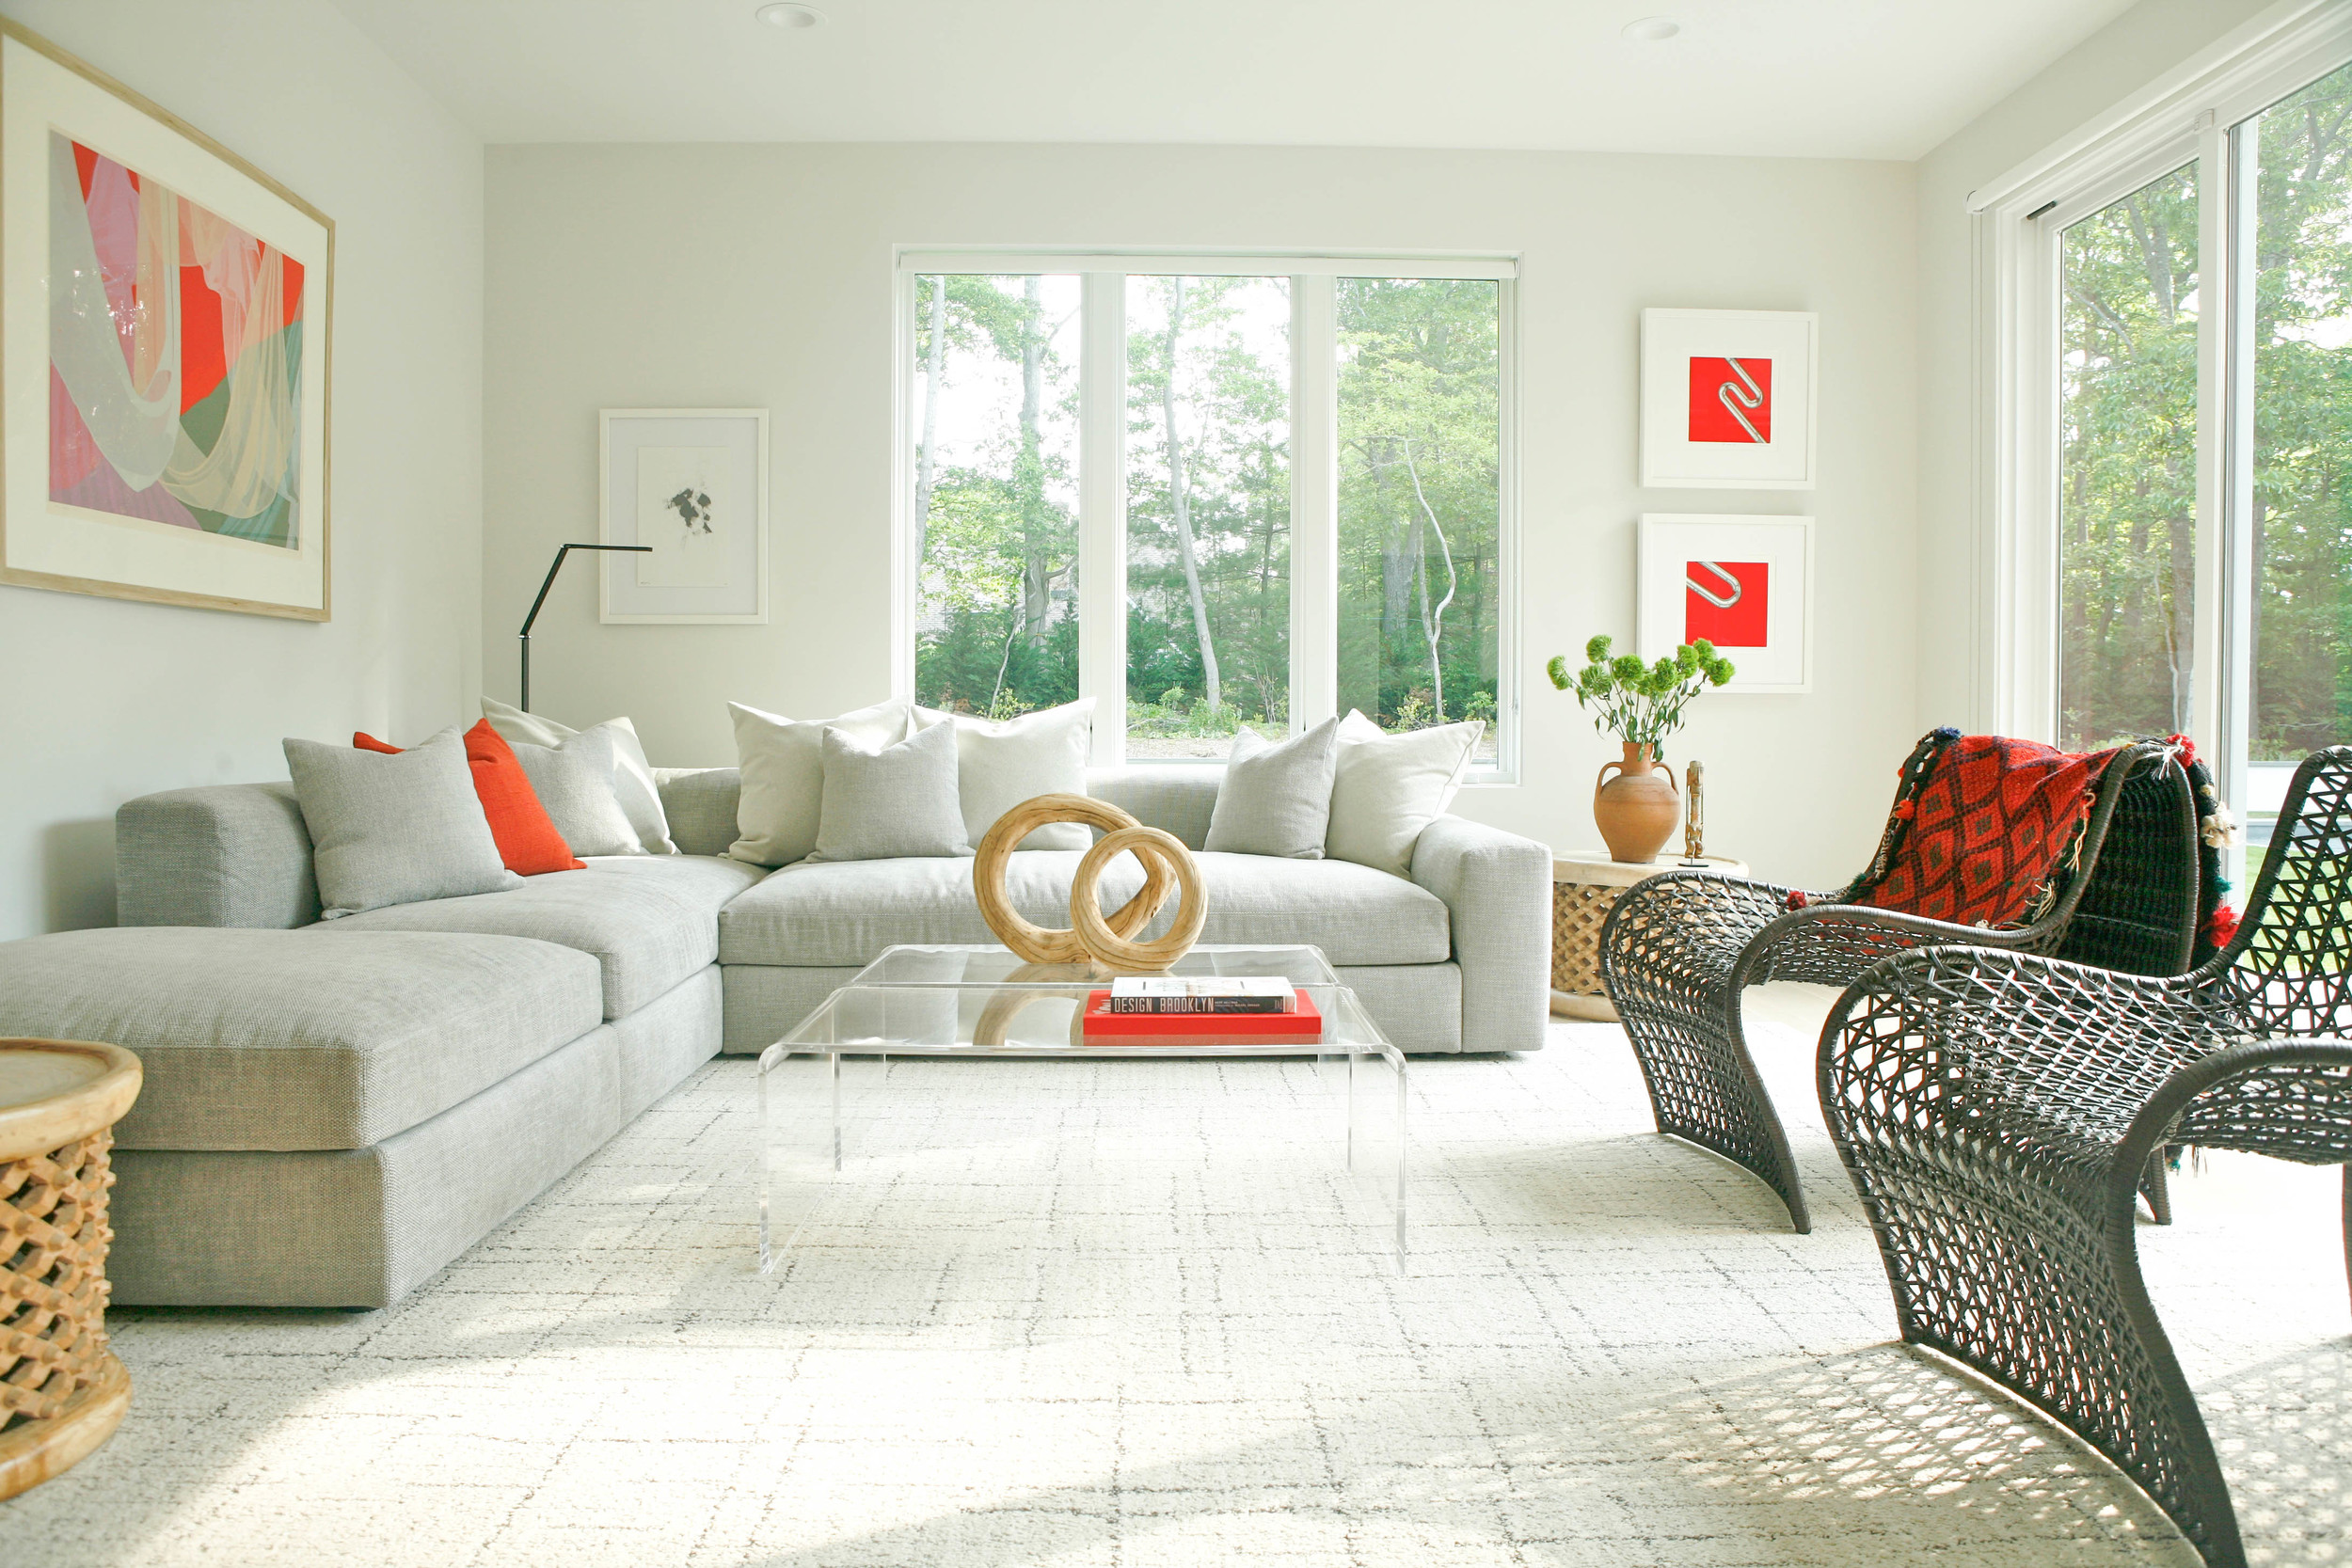 Family Room in our client's East Hampton home featured in NY Spaces Magazine Summer 2016 issue. Photography by Niya Bascom. See the rest at ishkadesigns.com.